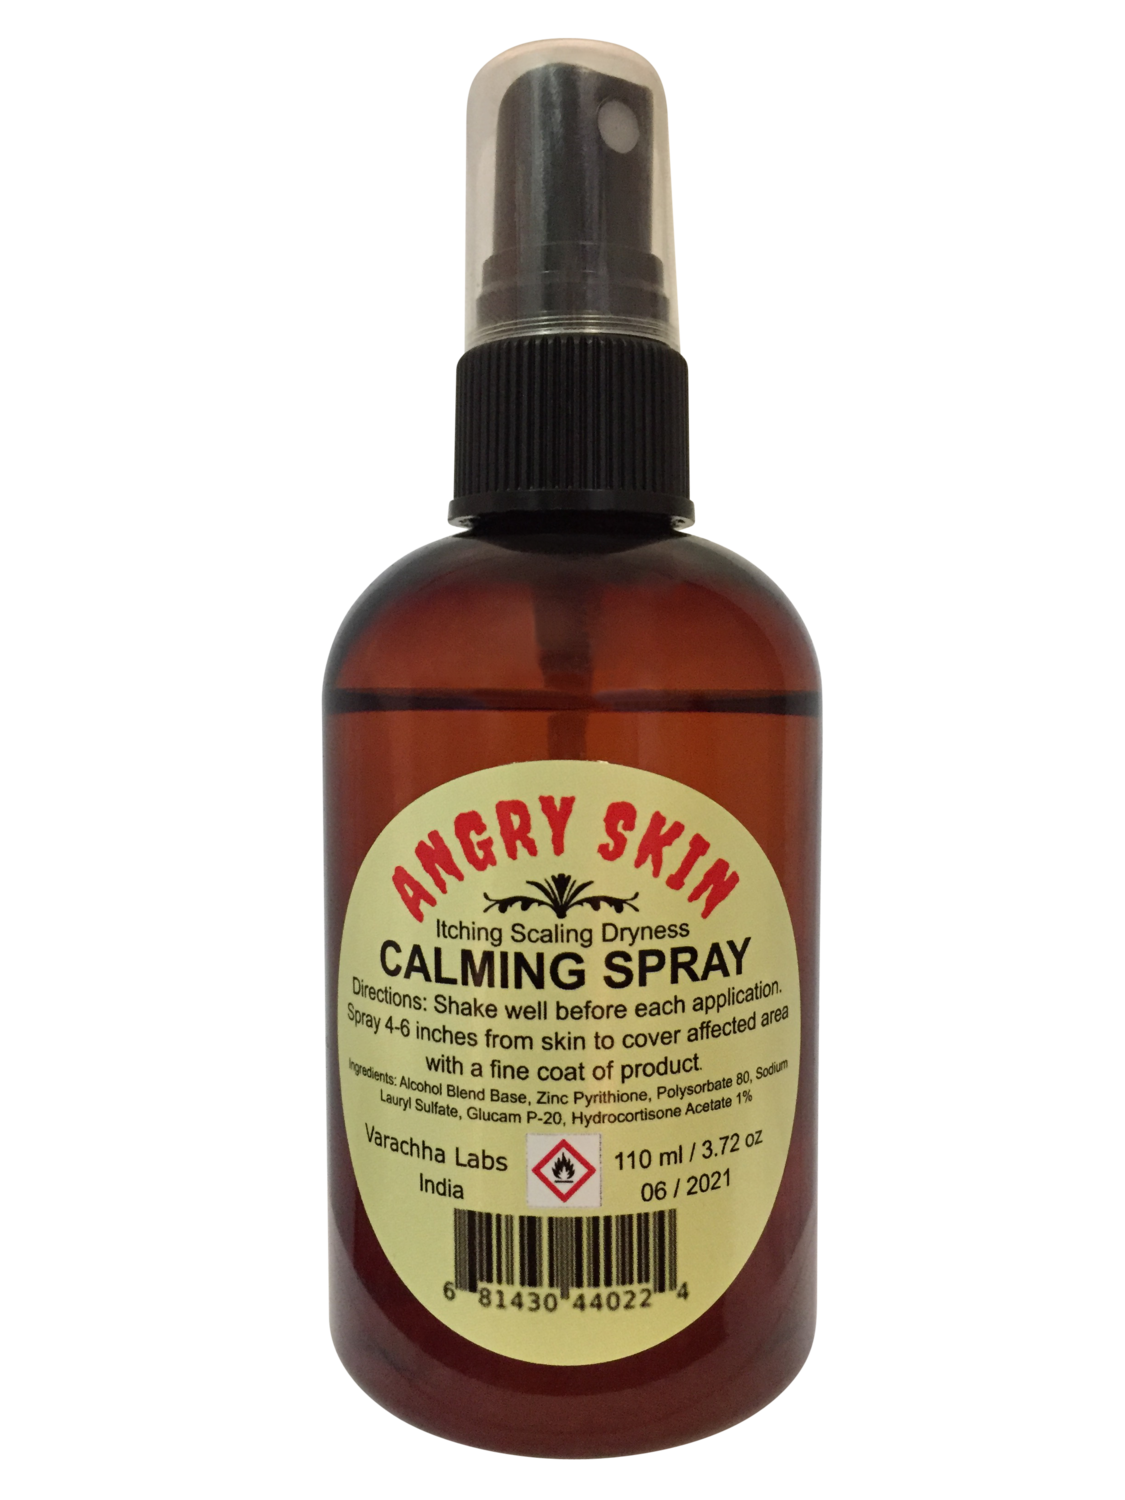 Angry Skin Calming Spray Eczema & Psoriasis for Dry Irritated Skin Itch Relief and Dermatitis Zinc Pyrithione (ZnP) Formula Promotes Healing and Calms Redness Rash and Itching Fast  110 ml / 3.72 oz